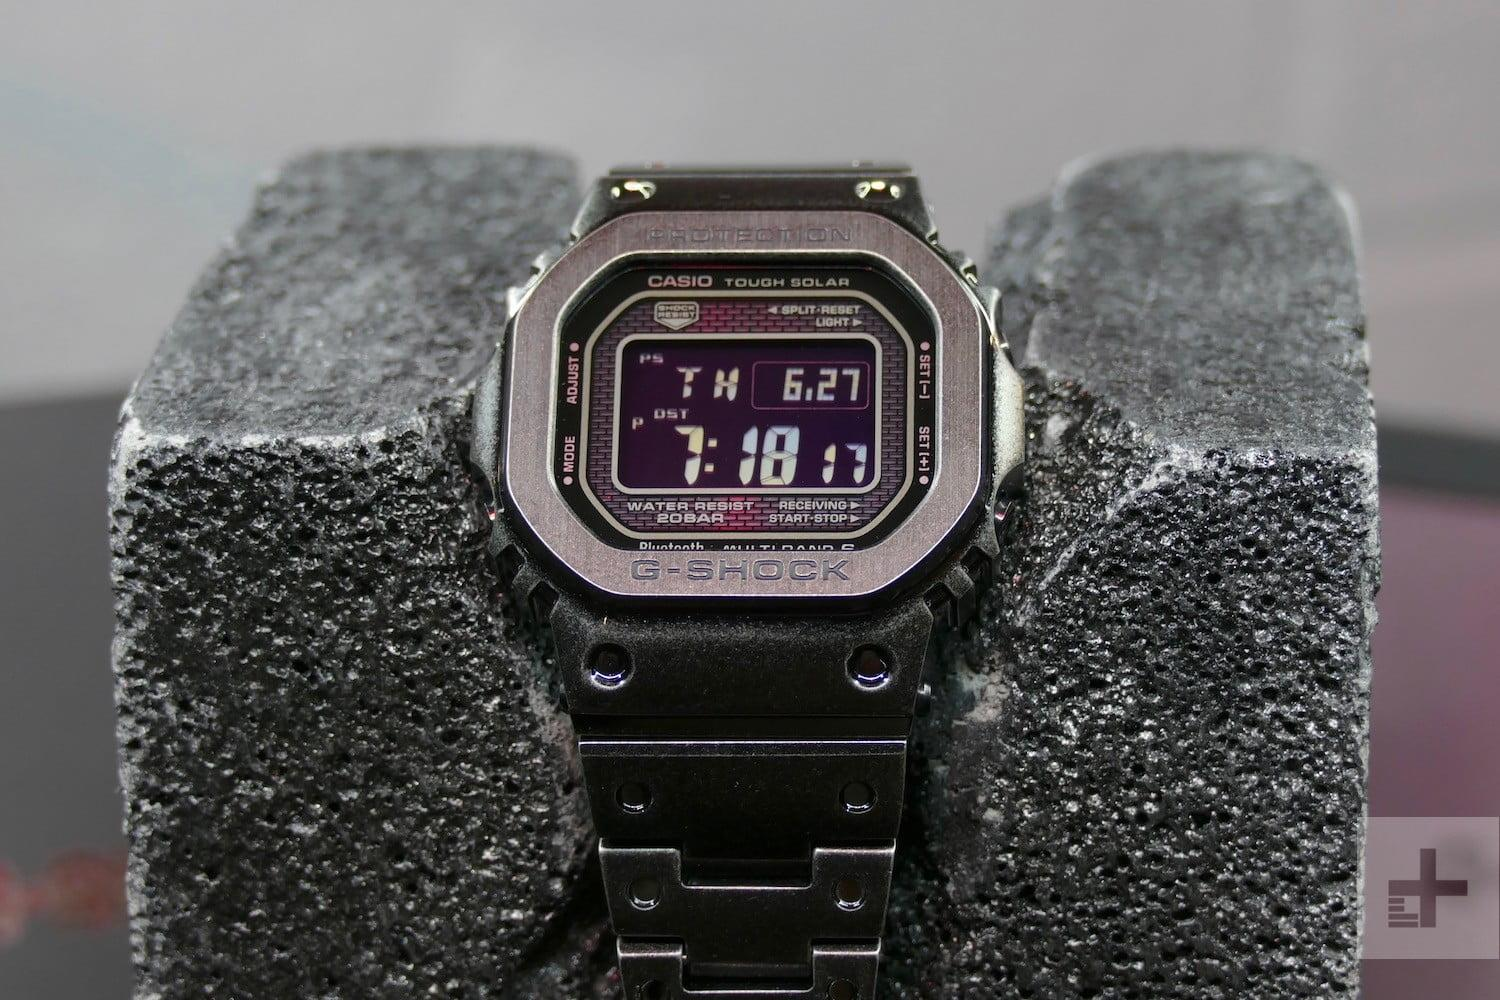 9c3d6a0bc6 Casio's making a G-Shock smartwatch, and it's going to be tougher ...